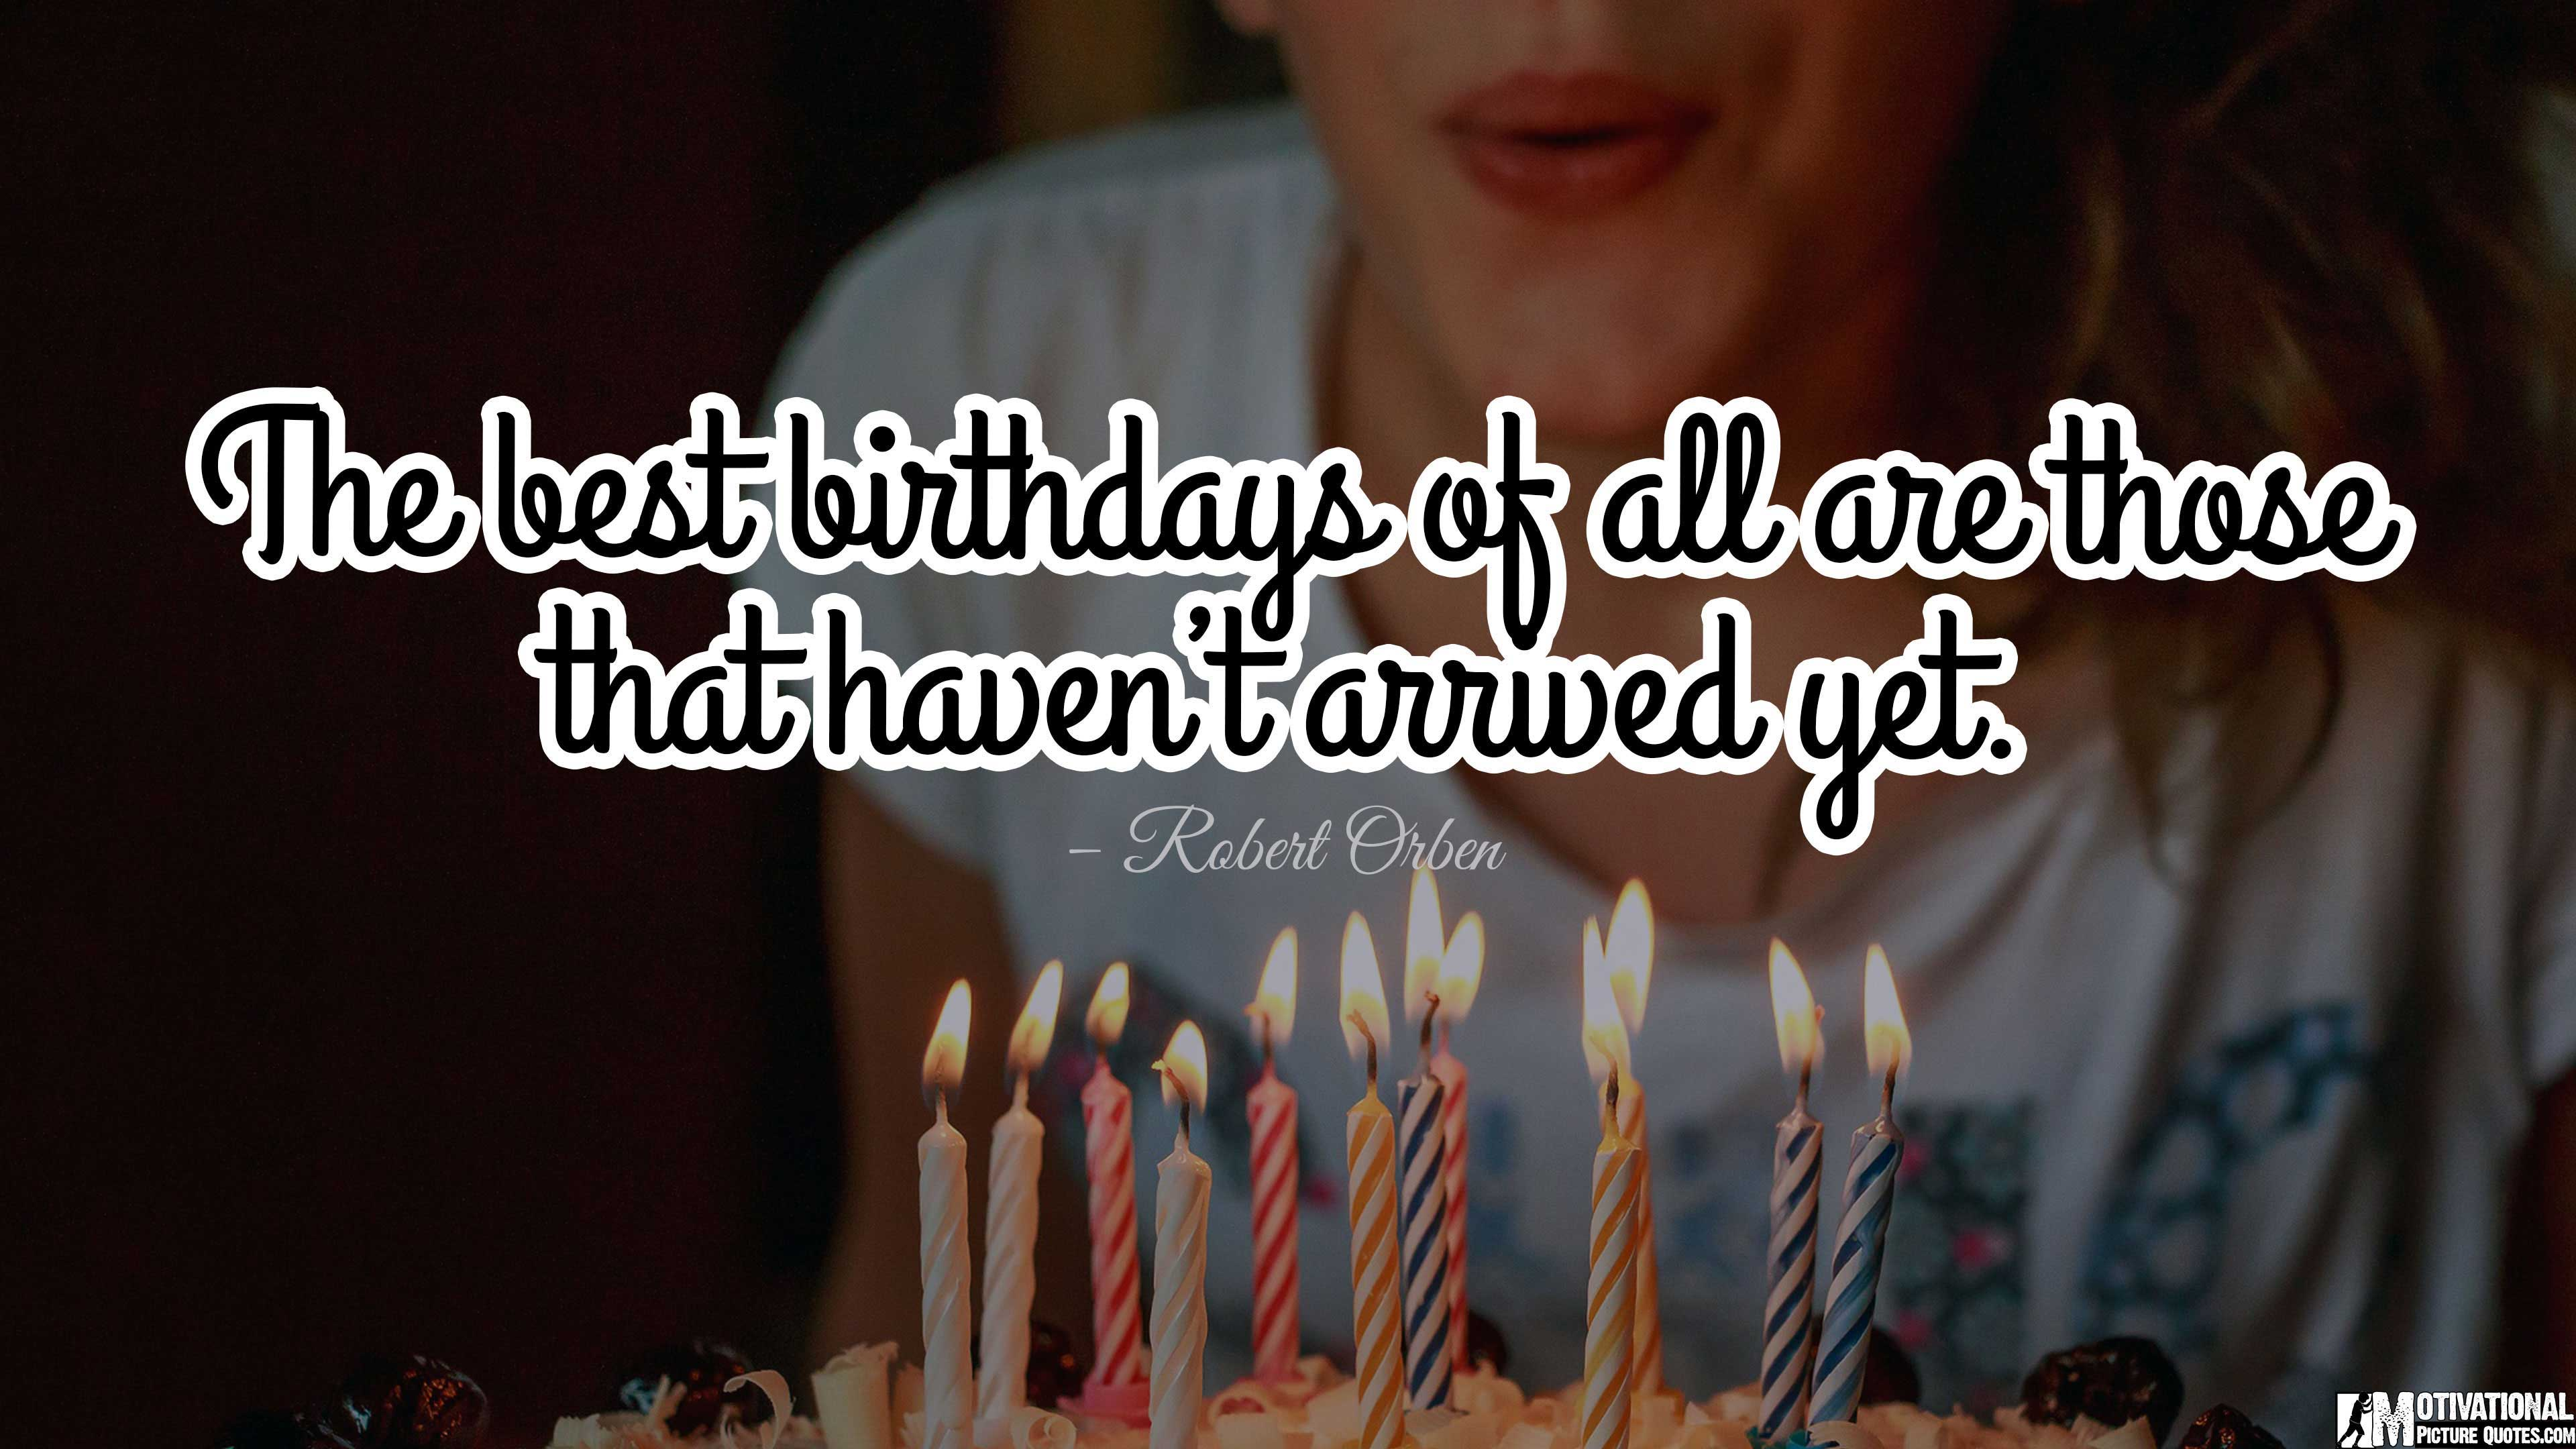 35+ Inspirational Birthday Quotes Images